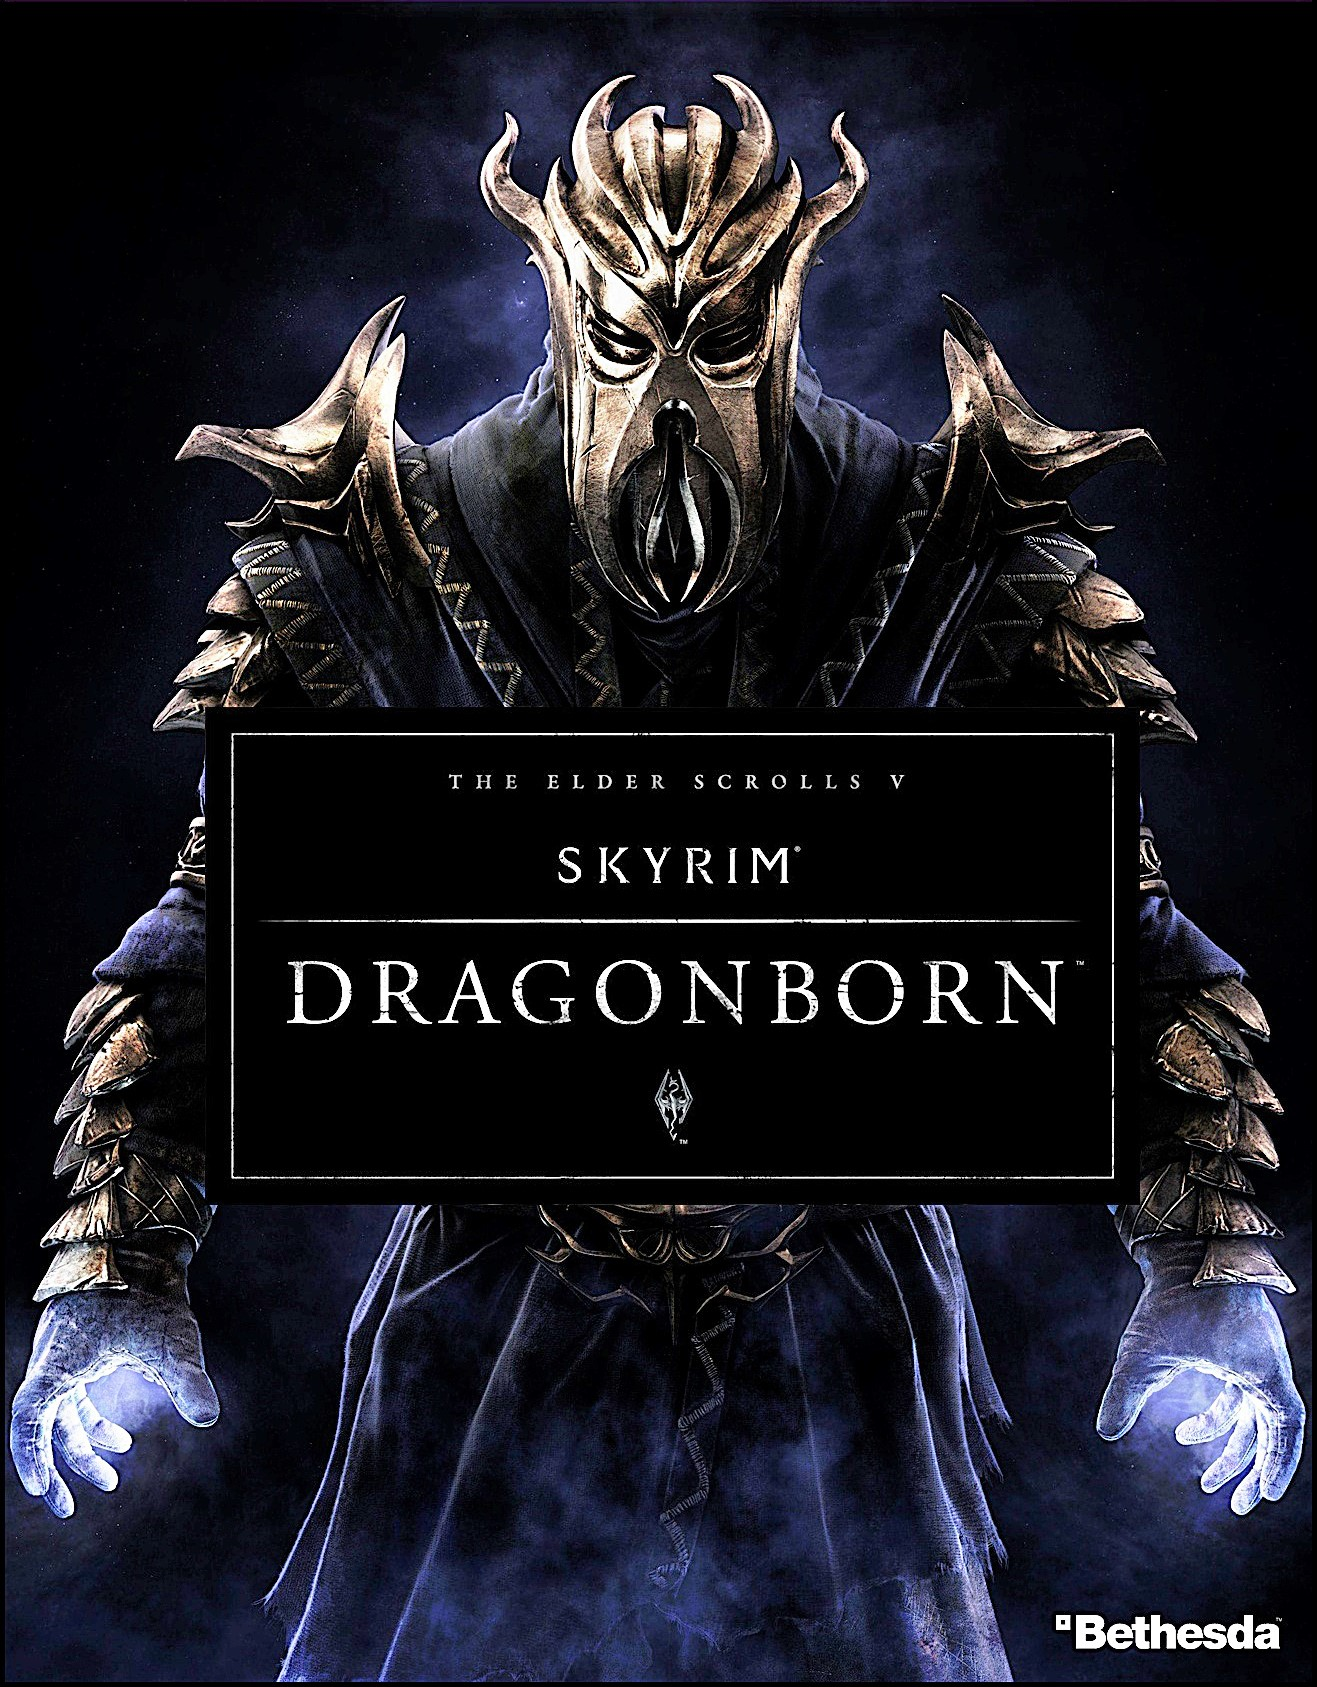 Jimeee/Dragonborn - A brief guide to editing.